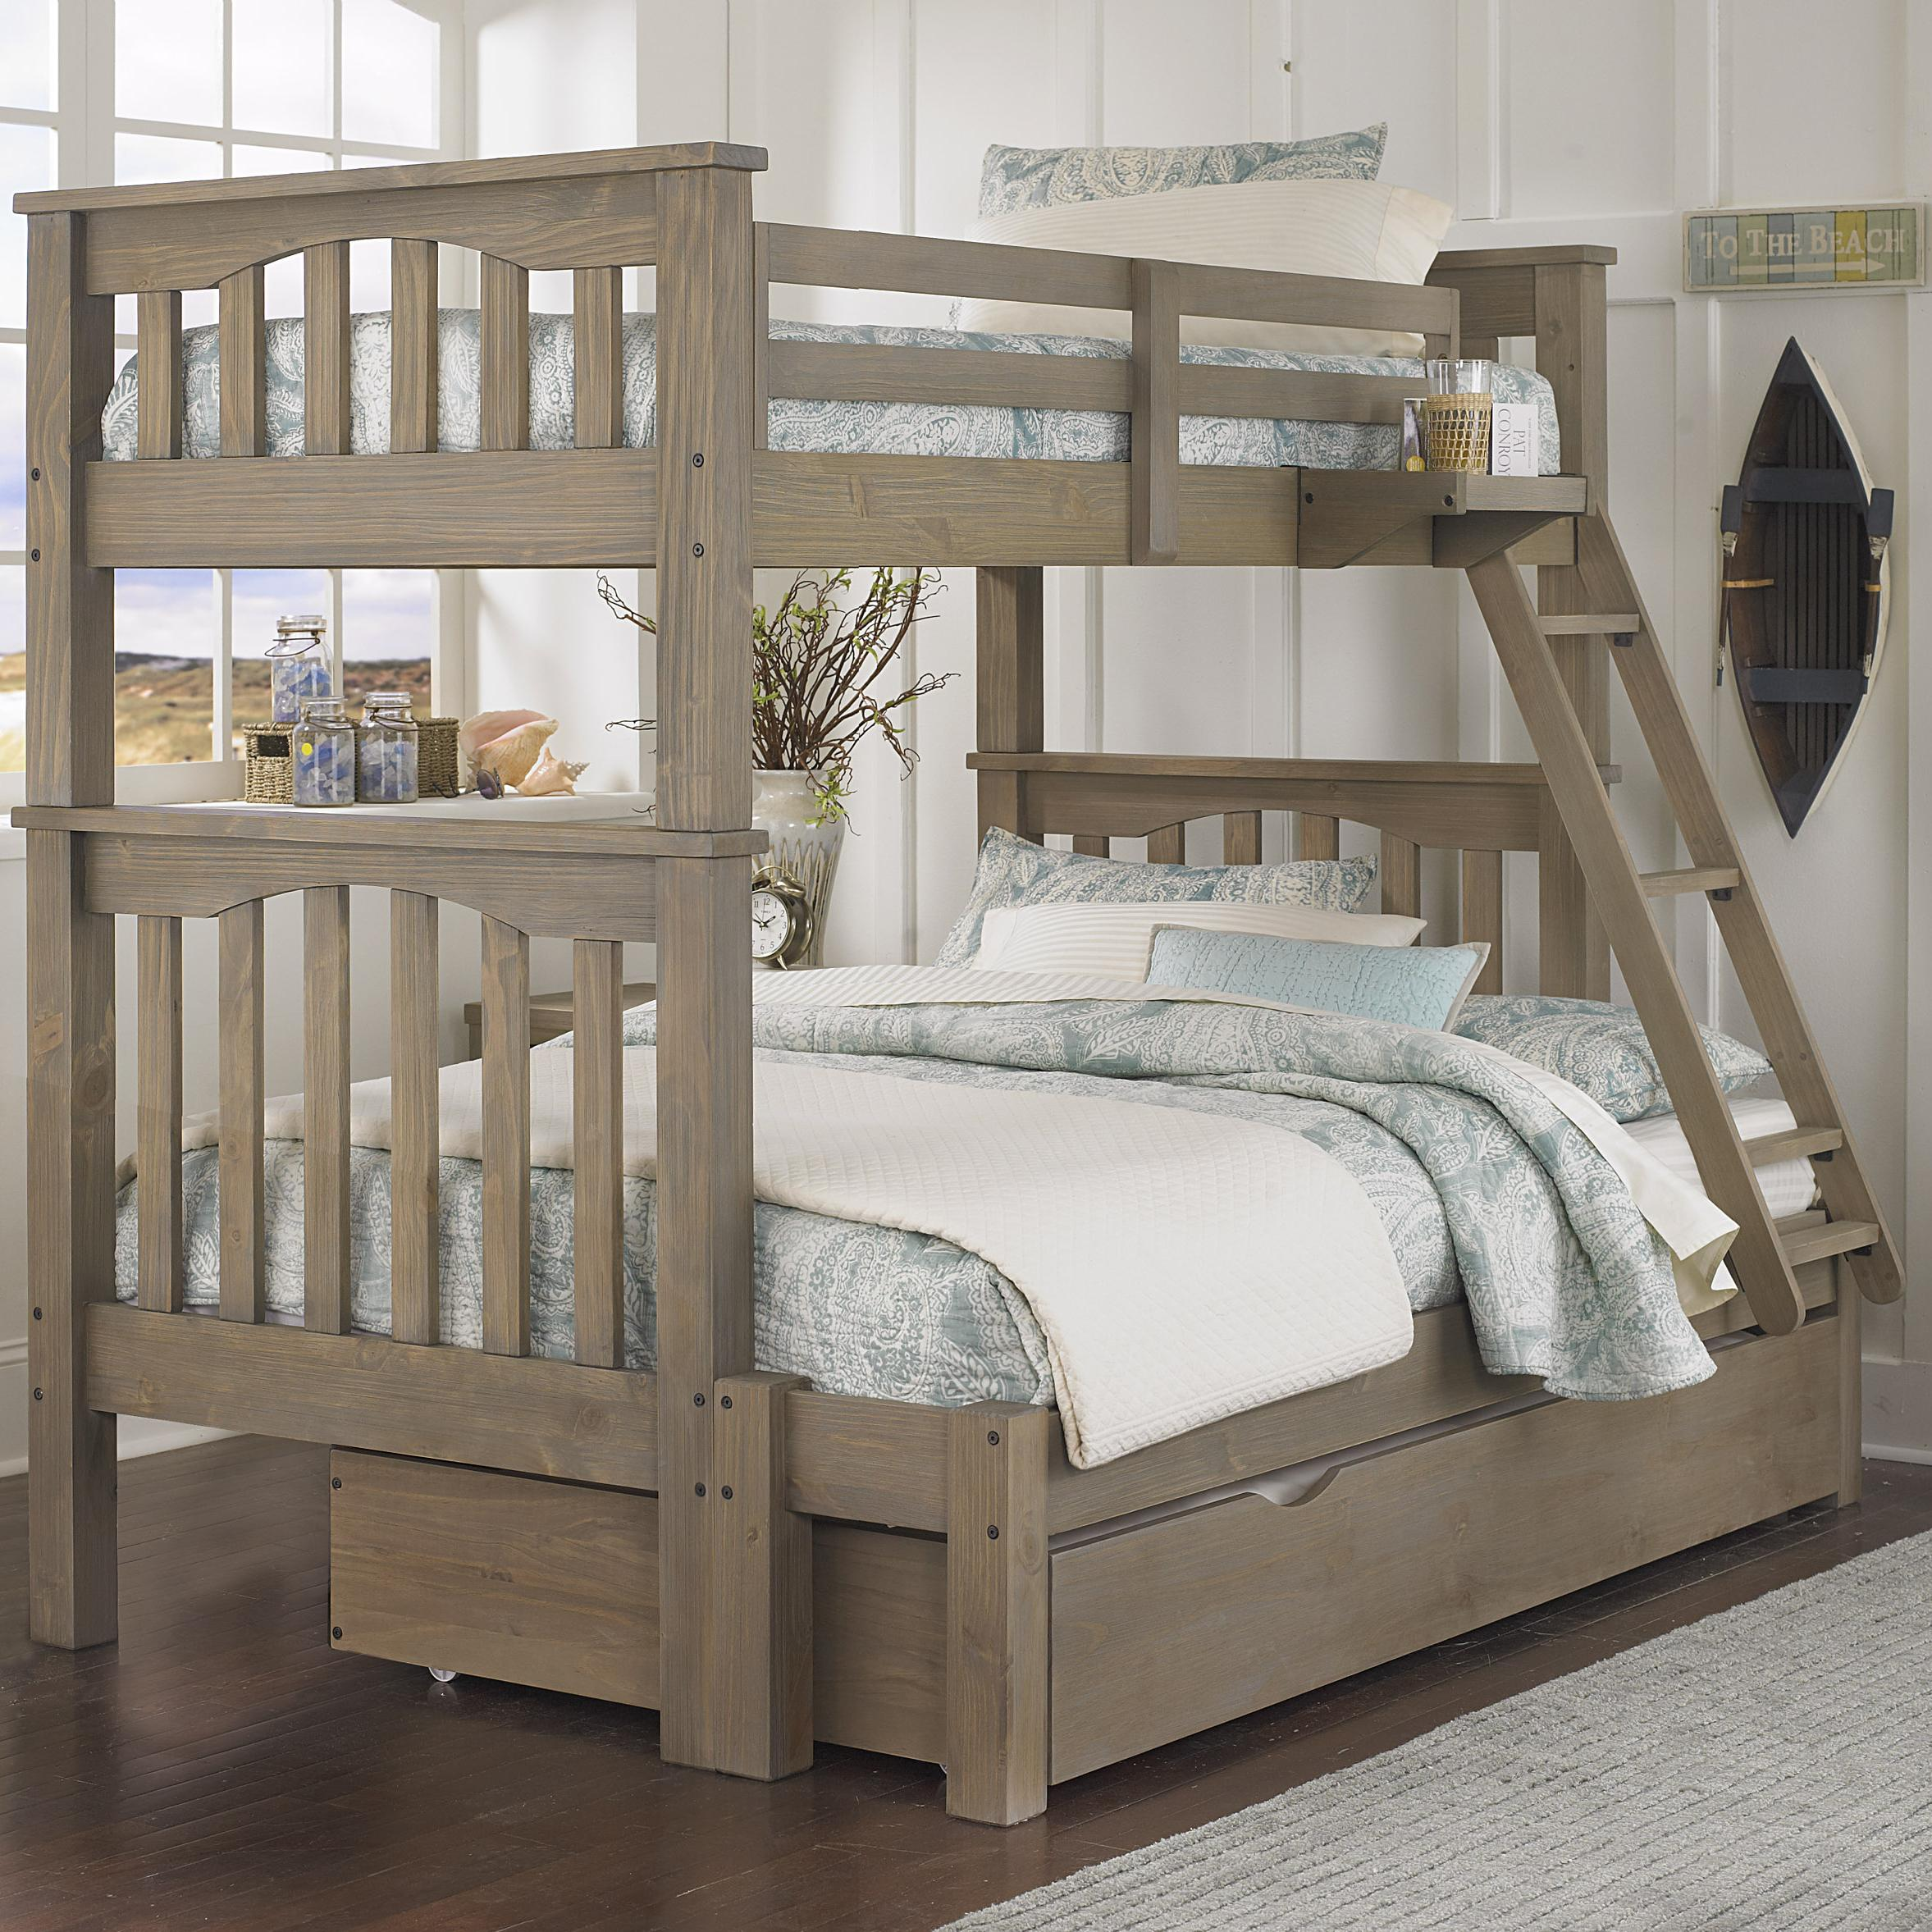 Highlands Twin Over Full Bunk Bed With Trundle by NE Kids at Westrich Furniture & Appliances